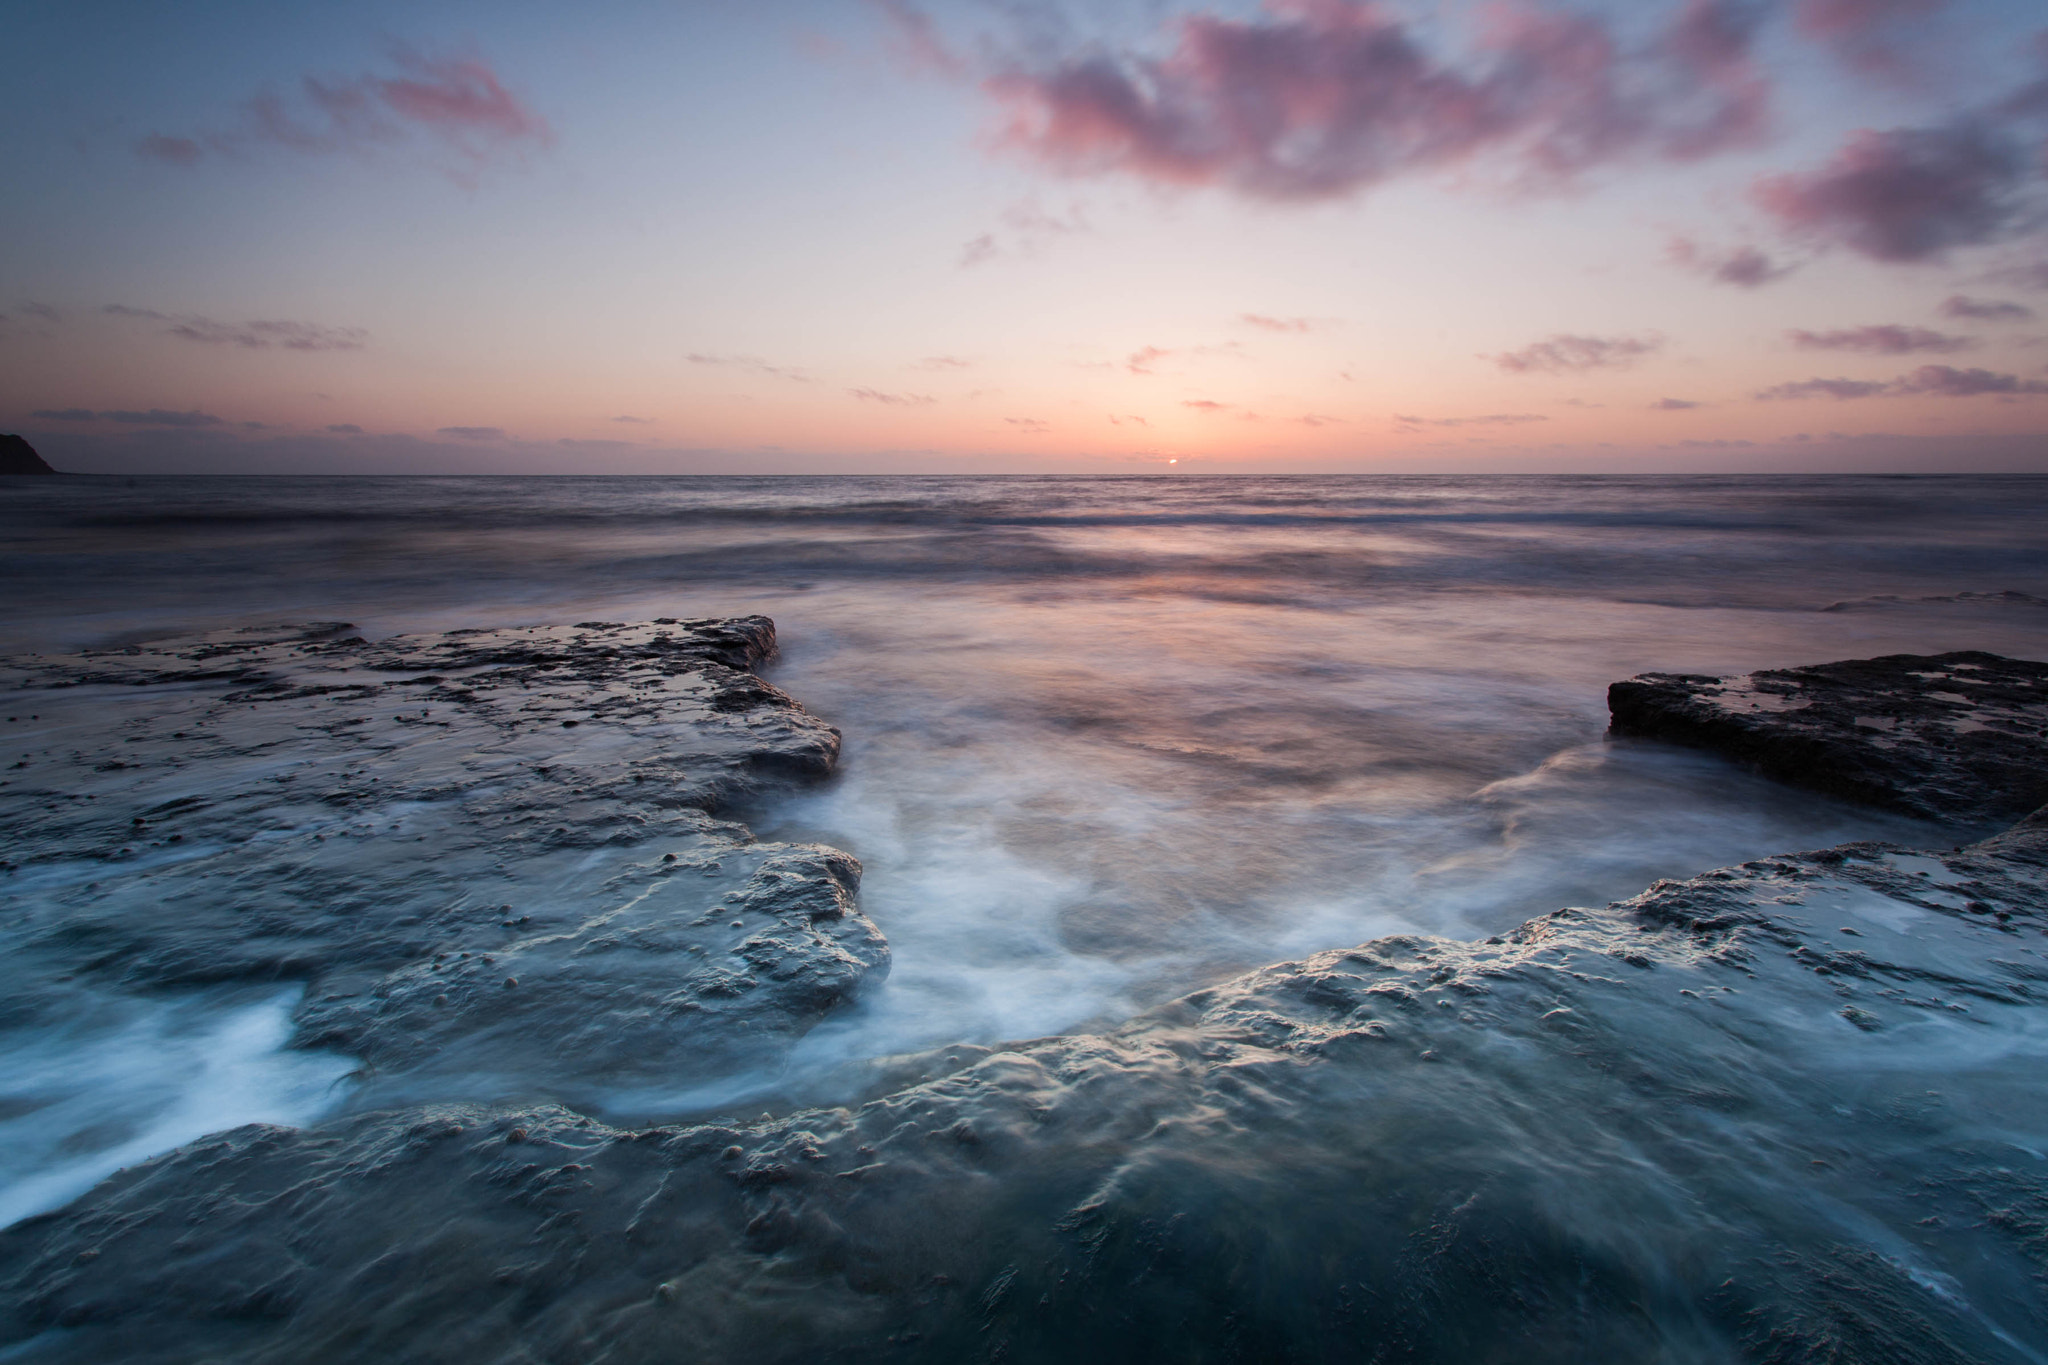 Photograph Off the Rocks by Carl Mickleburgh on 500px